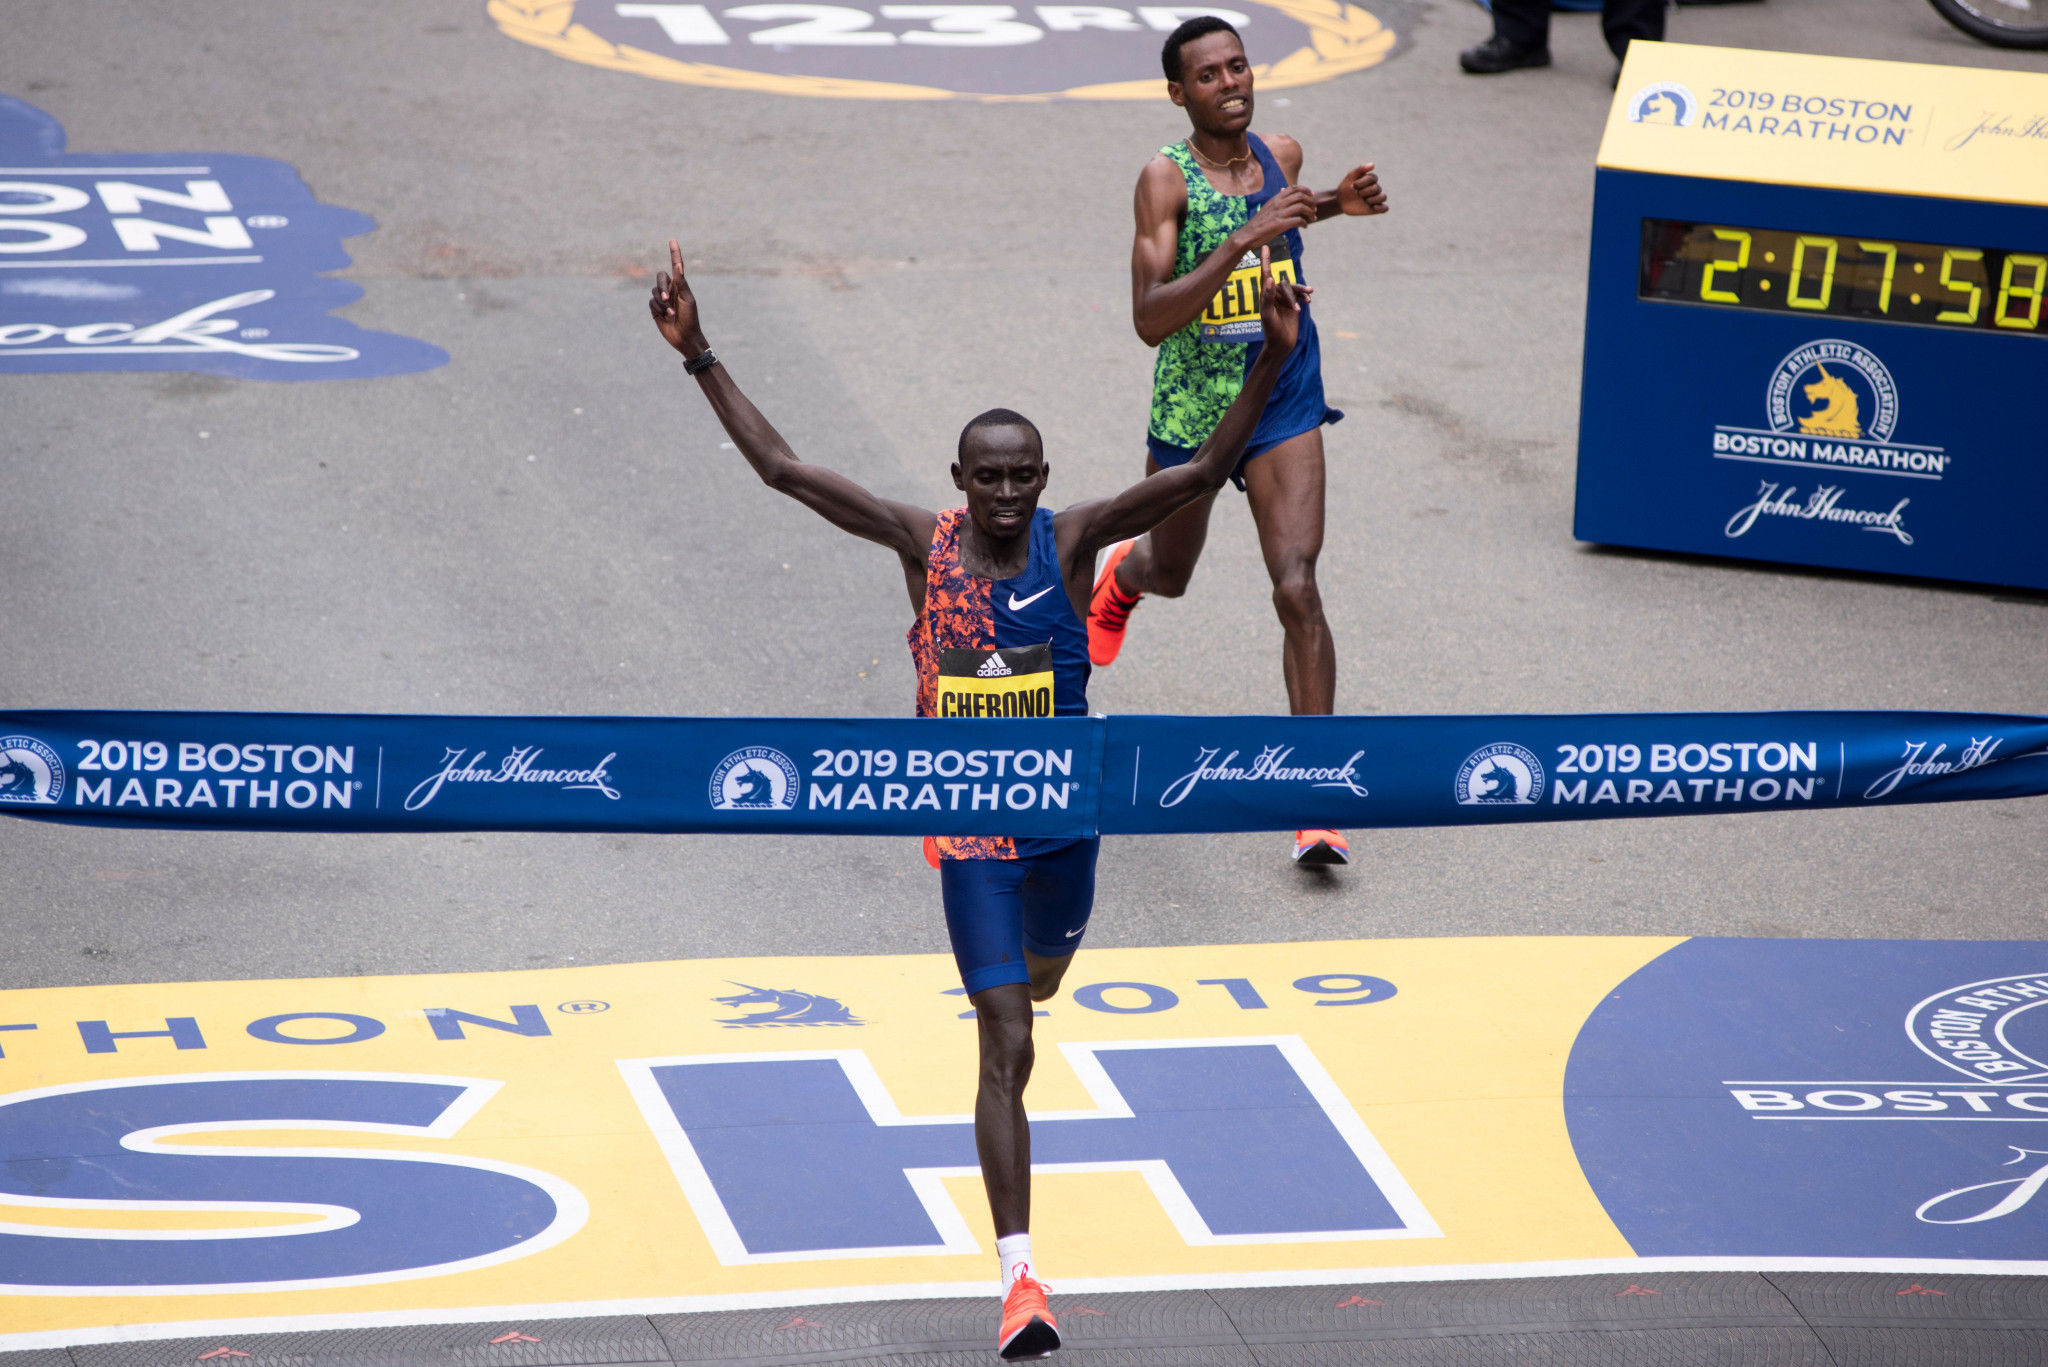 Former winners headline fields for 124th Boston Marathon